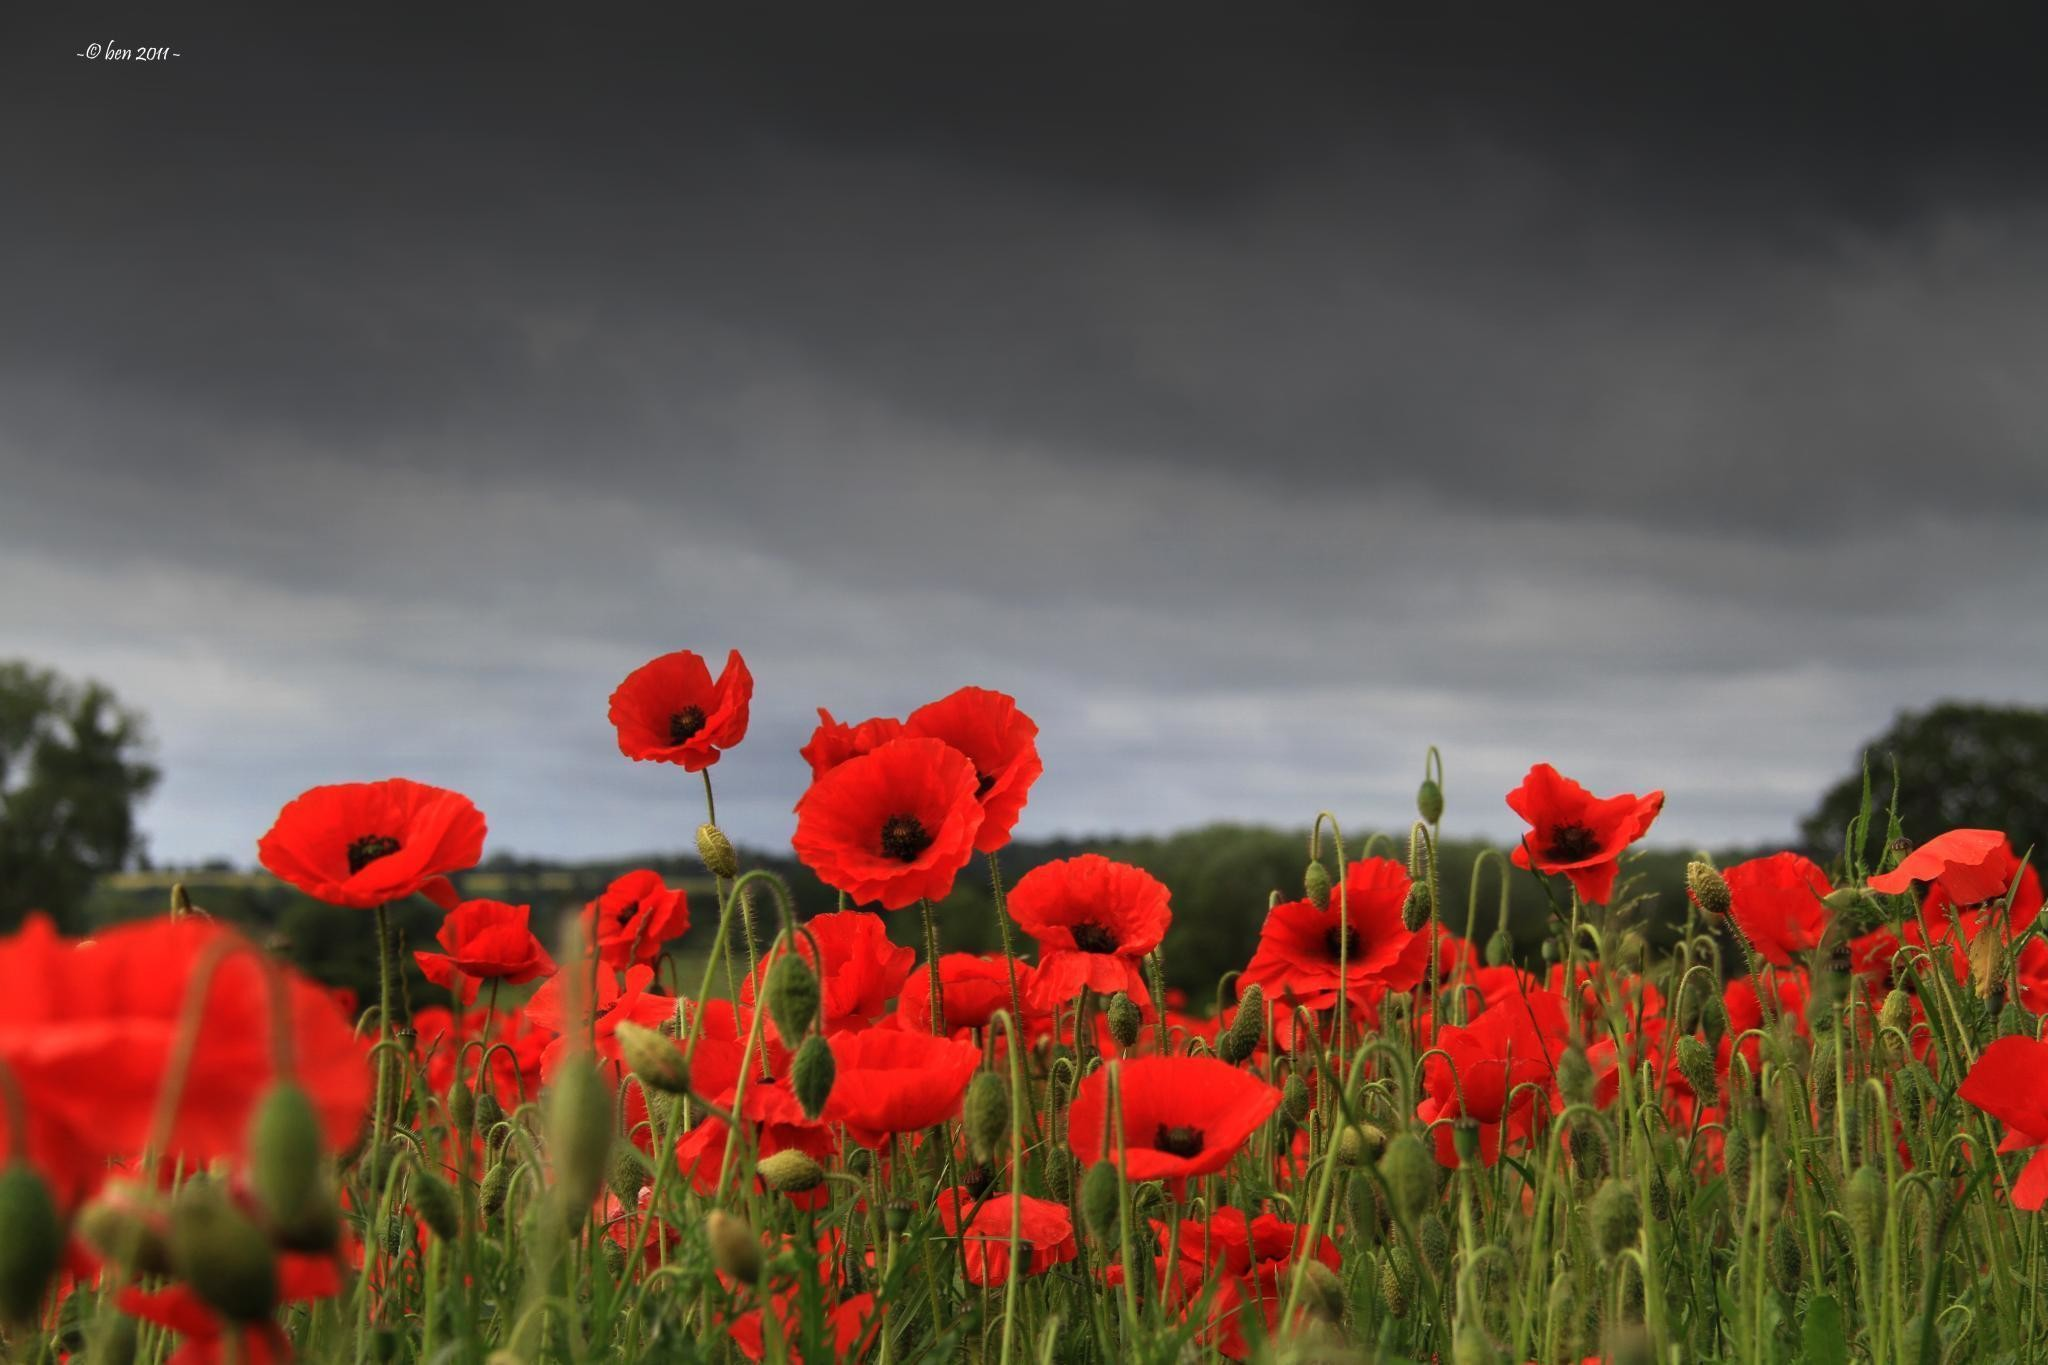 2048x1365 Images For > Remembrance Day Poppy Field